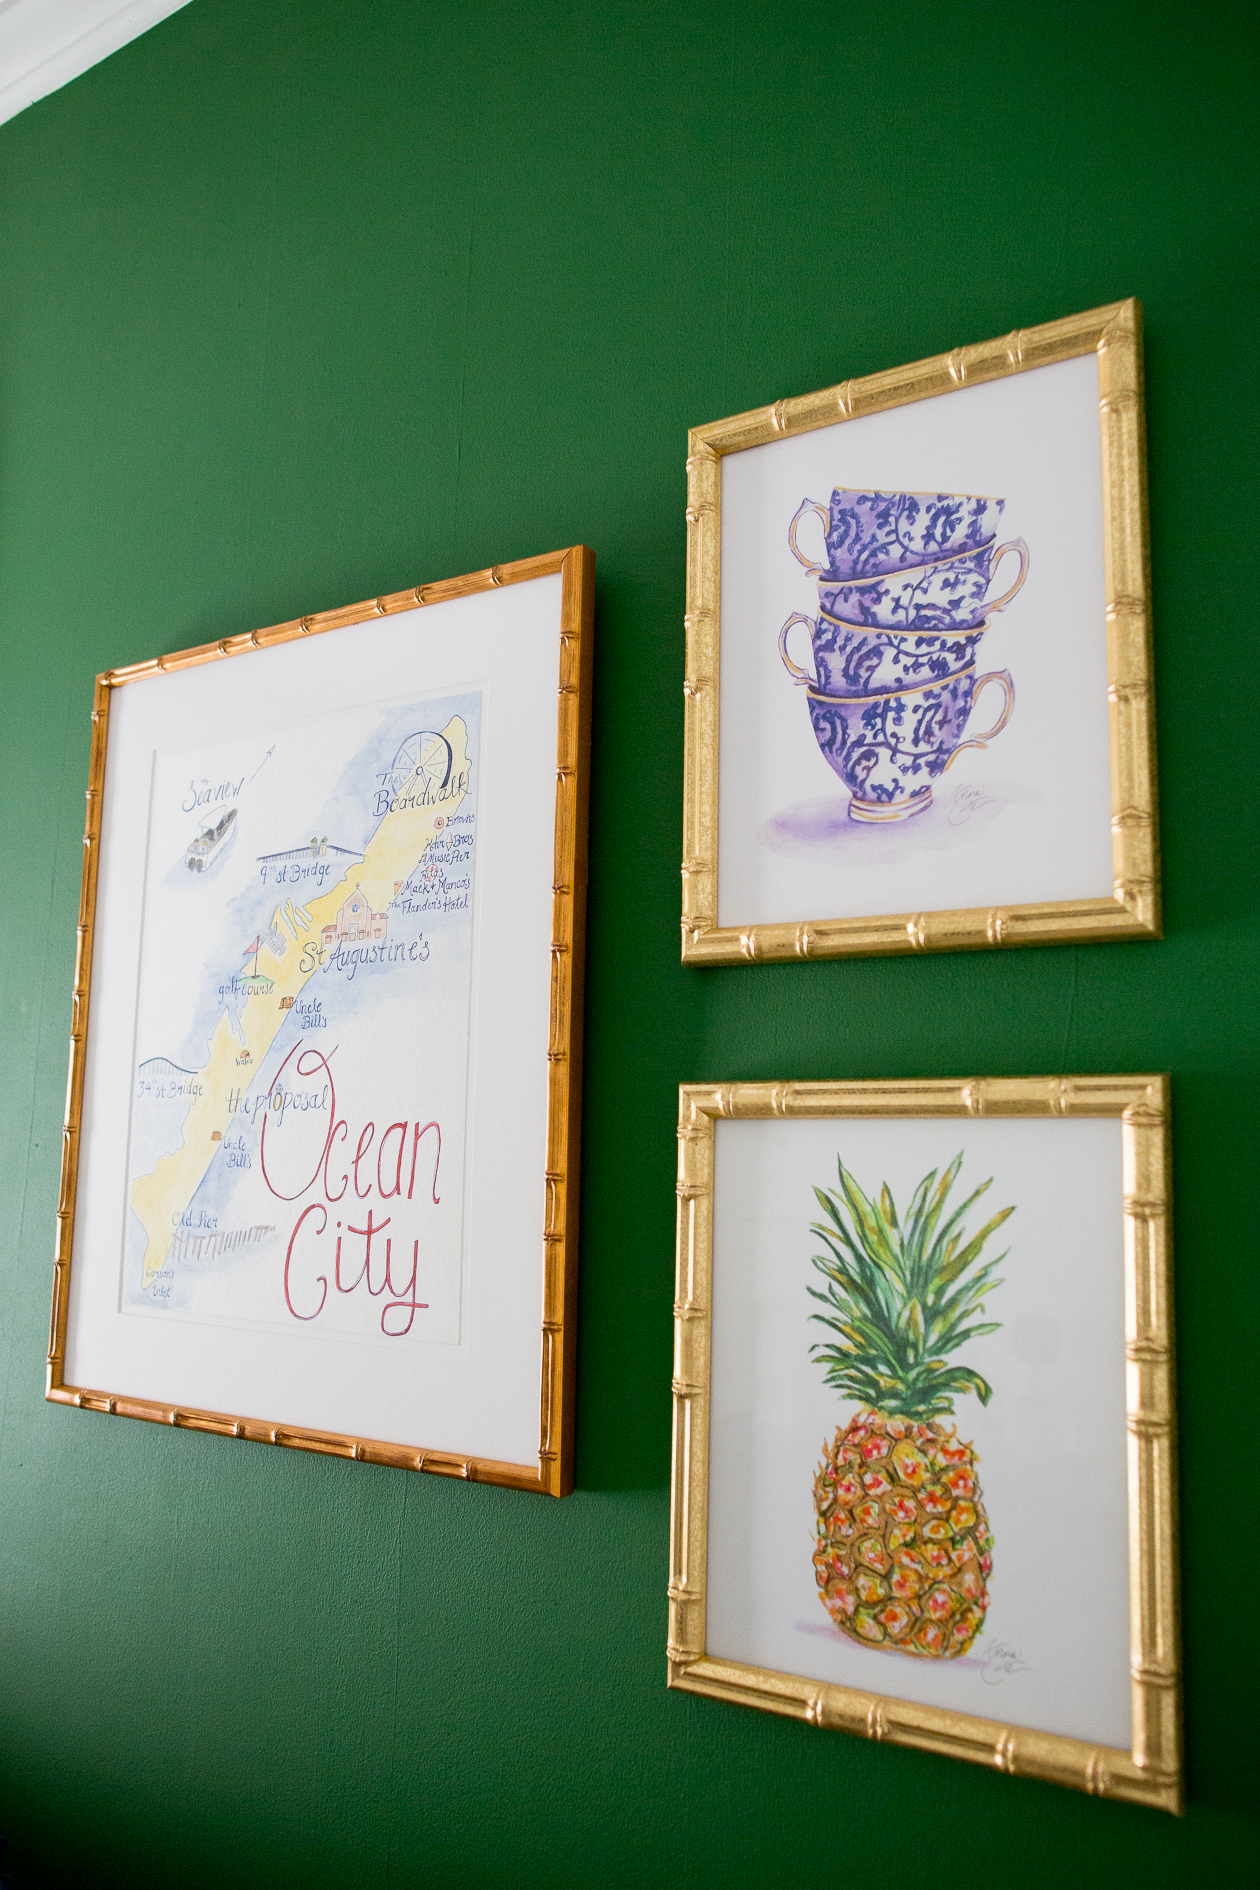 preppy-green-walls-gold-frames-38